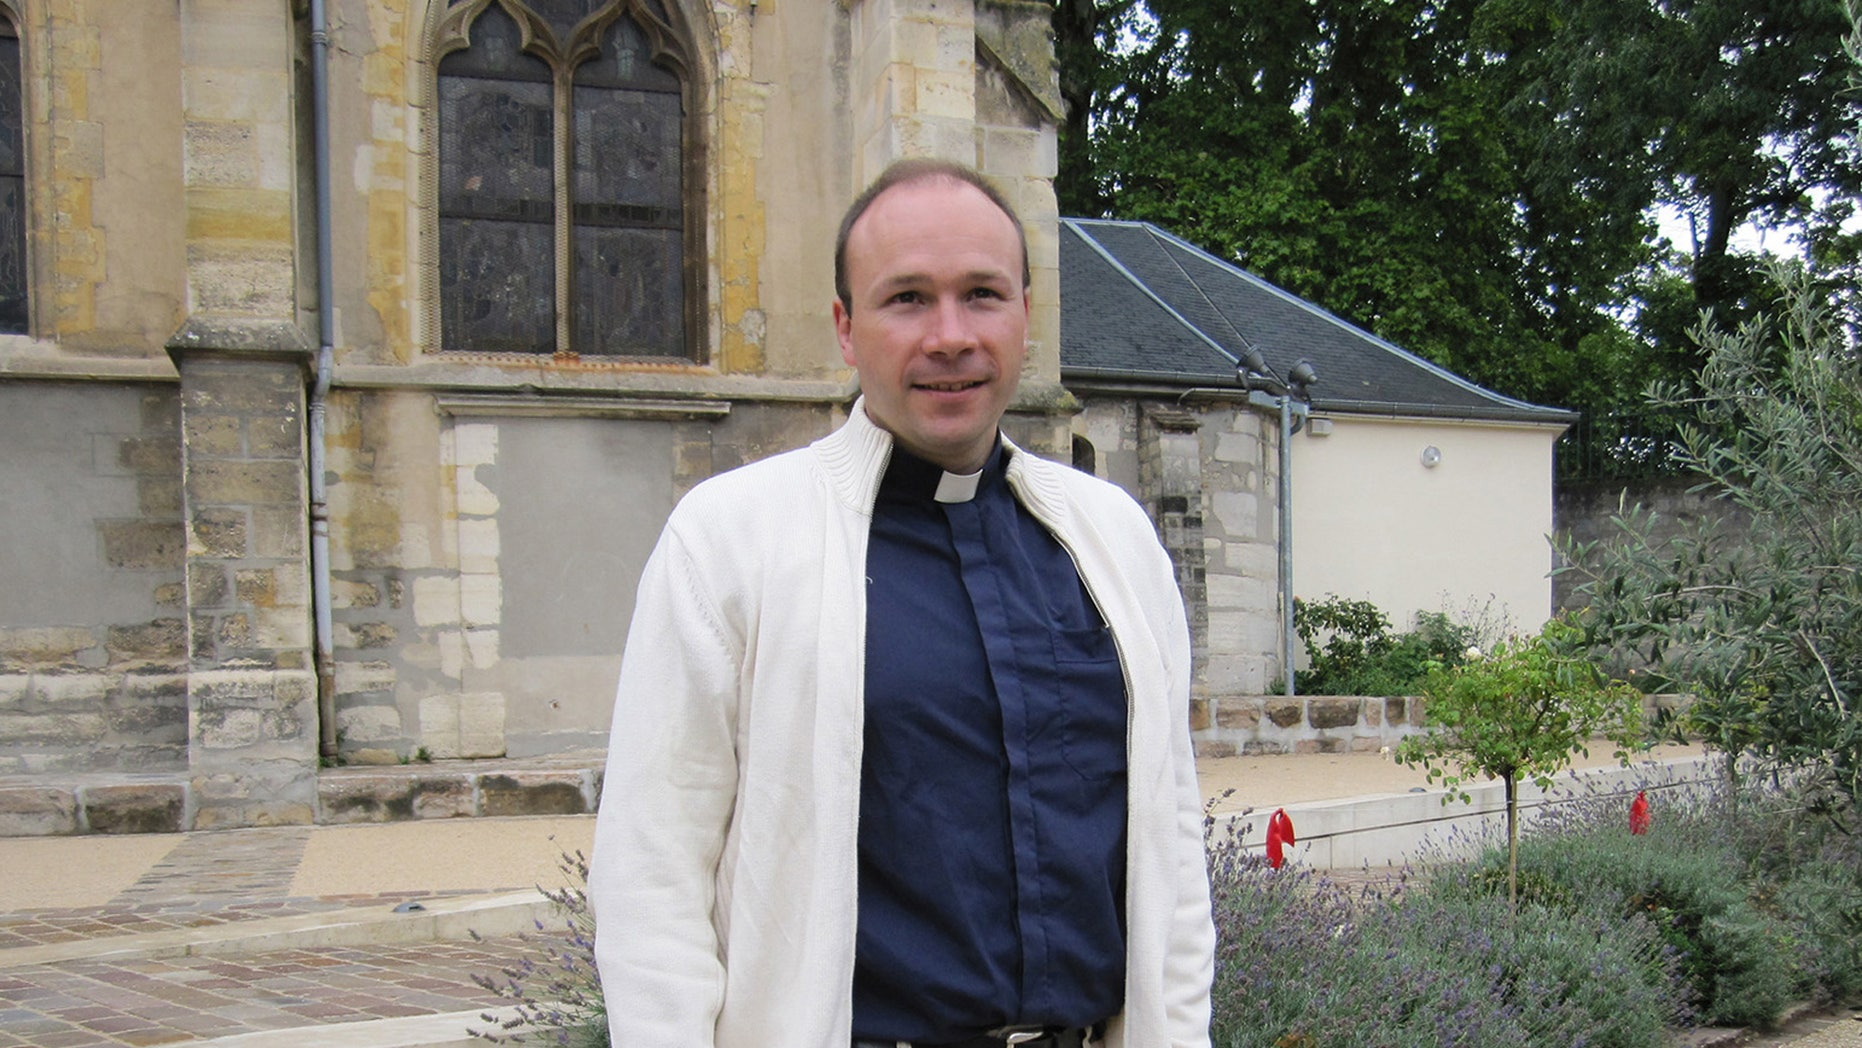 FILE - This July 2011 handout photo provided by the Sceaux City Hall, north of Paris, shows French priest Georges Vandenbeusch.  Vandenbeusch was kidnapped in Cameroon in mid-November has been set free, President Francois Hollande's office said Tuesday Dec. 31, 2013. Vandenbeusch was kidnapped by heavily armed men on Nov. 13 in the far north of Cameroon, about 18 miles (30 kilometers) from the border with Nigeria (AP Photo/Sceaux City Hall, File)